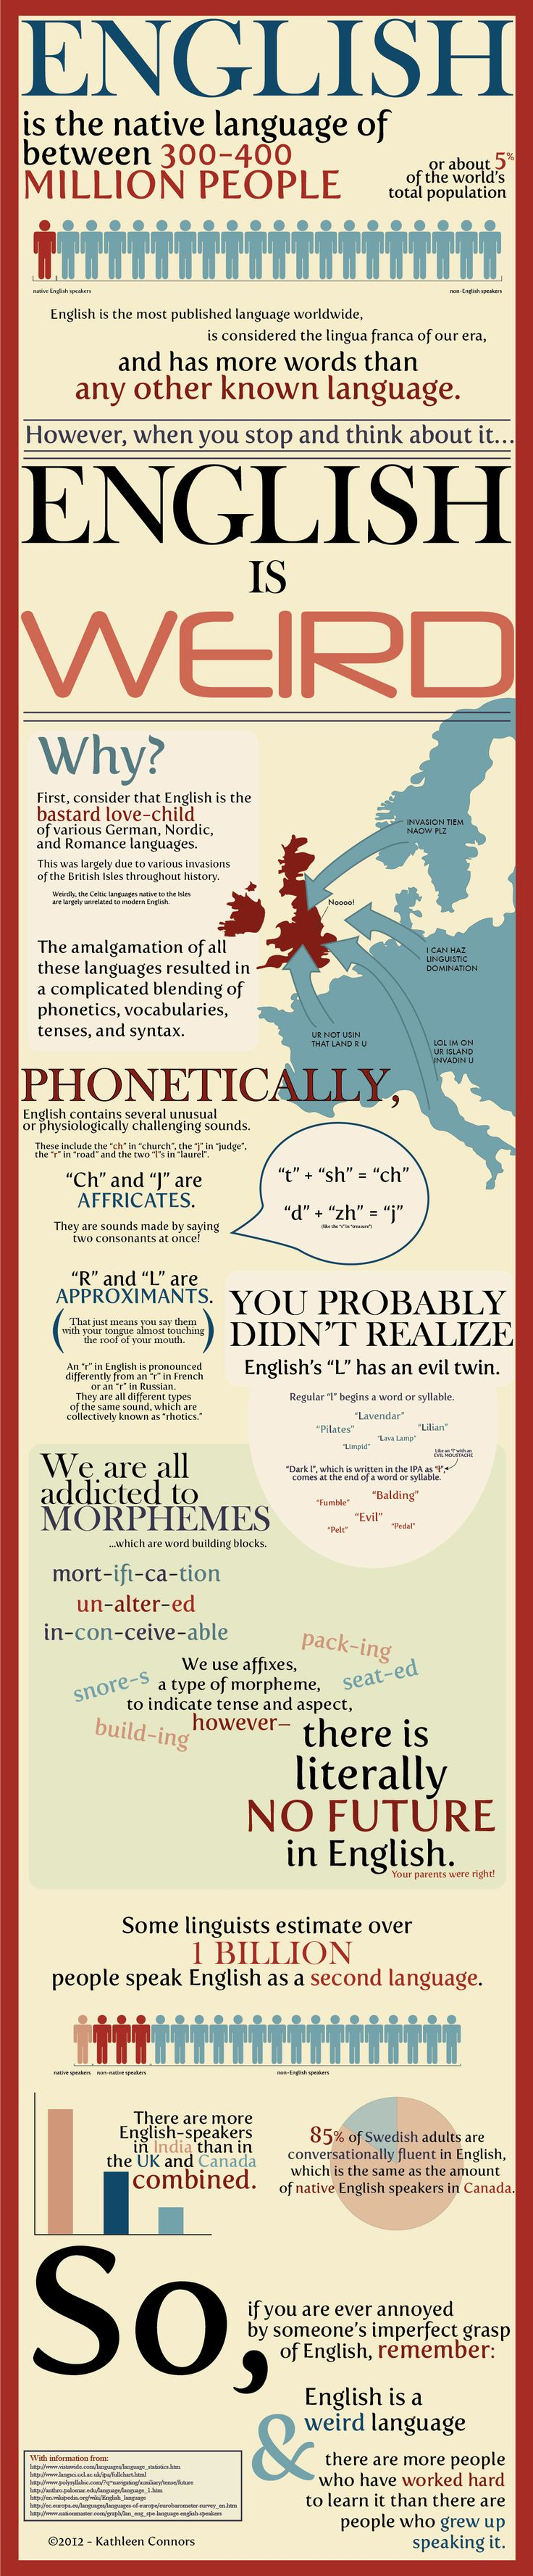 English odd facts.. Figured out the lack of future tense a few years ago and it's become frustrating! Great infographic!